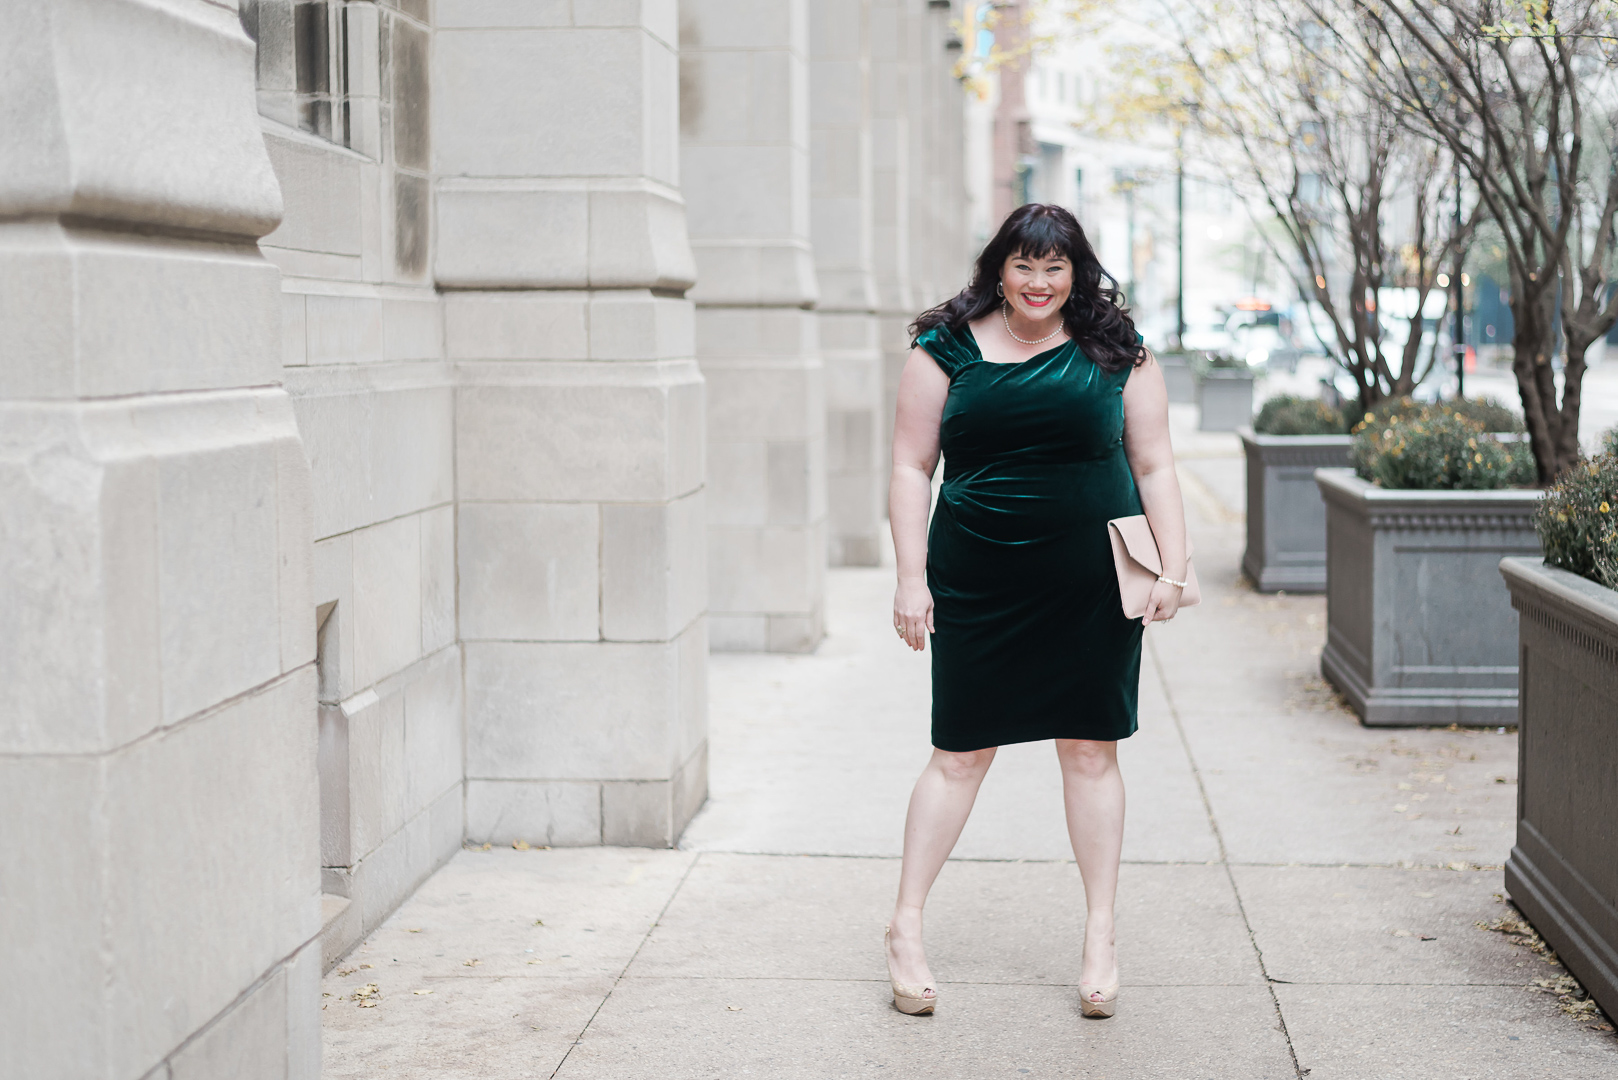 Emerald Green Plus Size, Macy's, Lauren Ralph Lauren Green Velvet Dress, Plus Size Style, Plus Size Fashion, Style Plus Curves, Chicago Blogger, Chicago Plus Size Blogger, Plus Size Blogger, Amber McCulloch